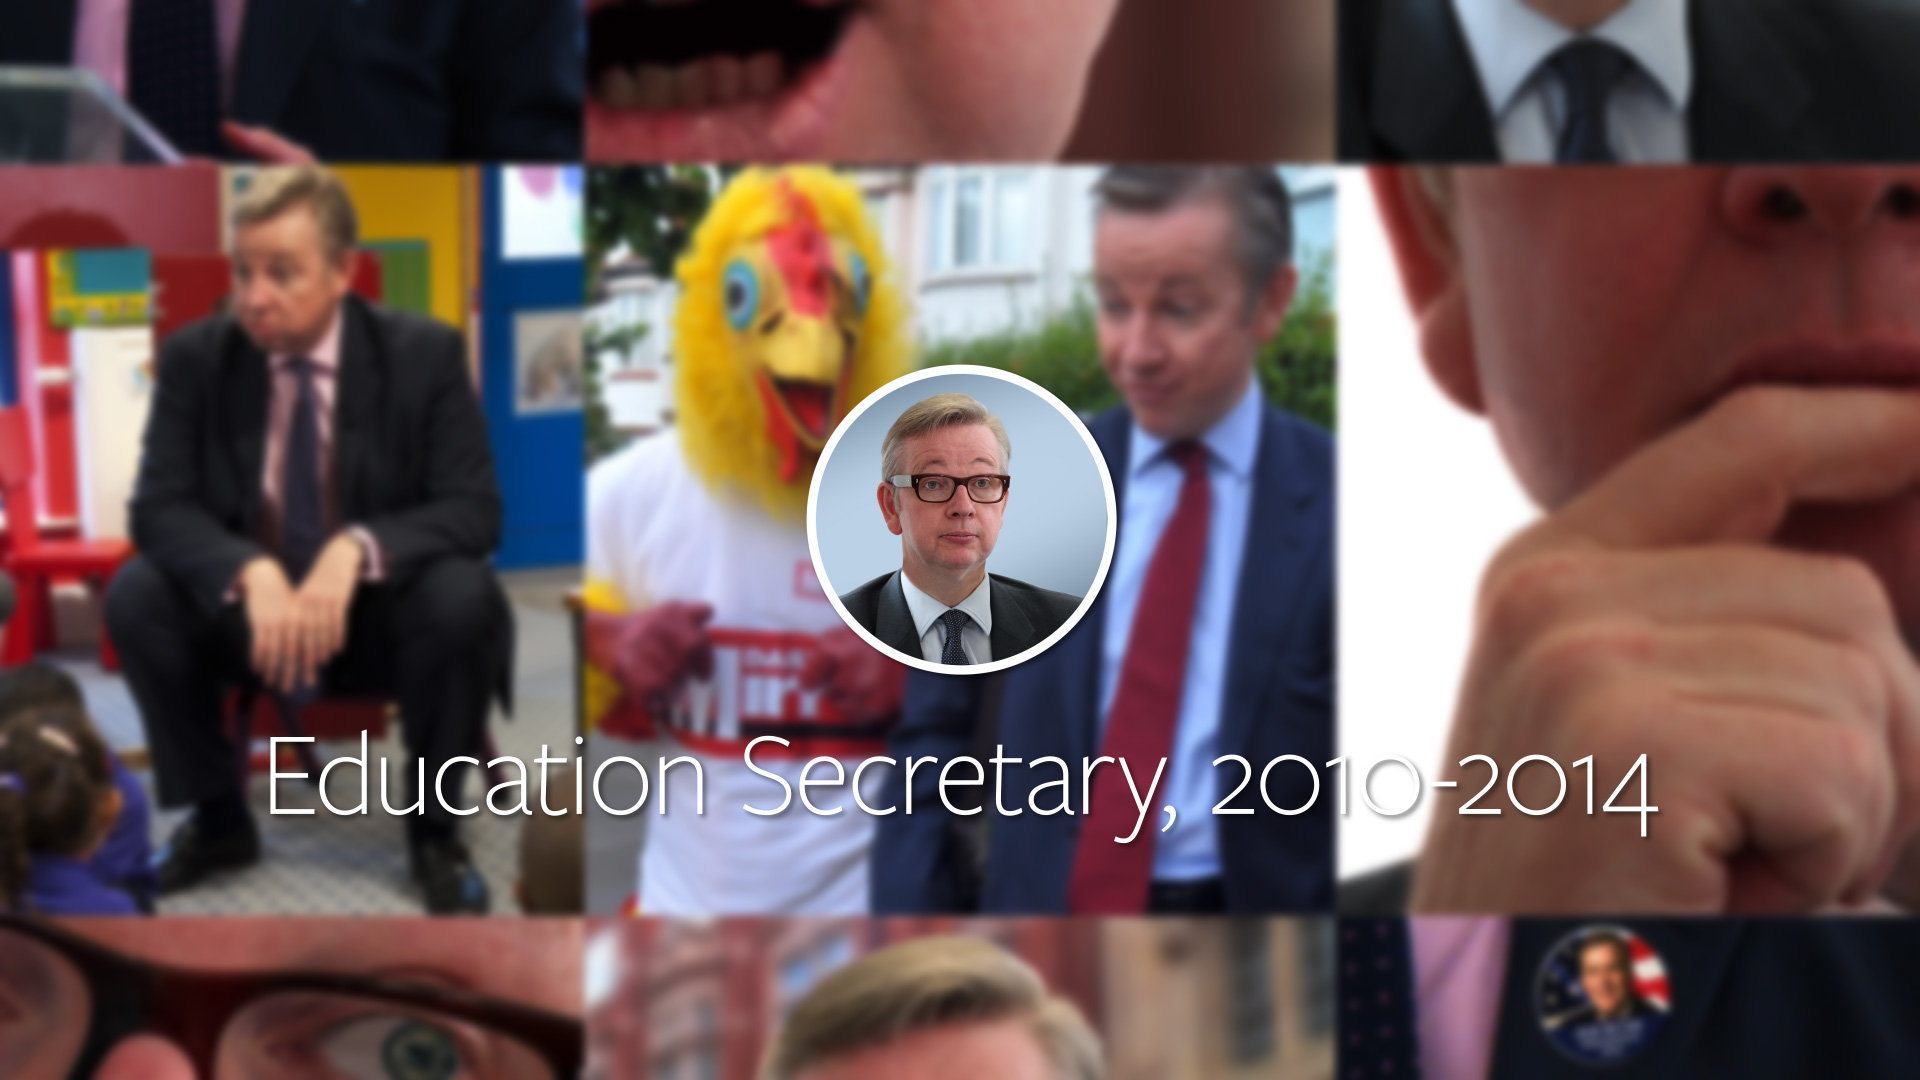 Michael Gove - A Look Back (2014)